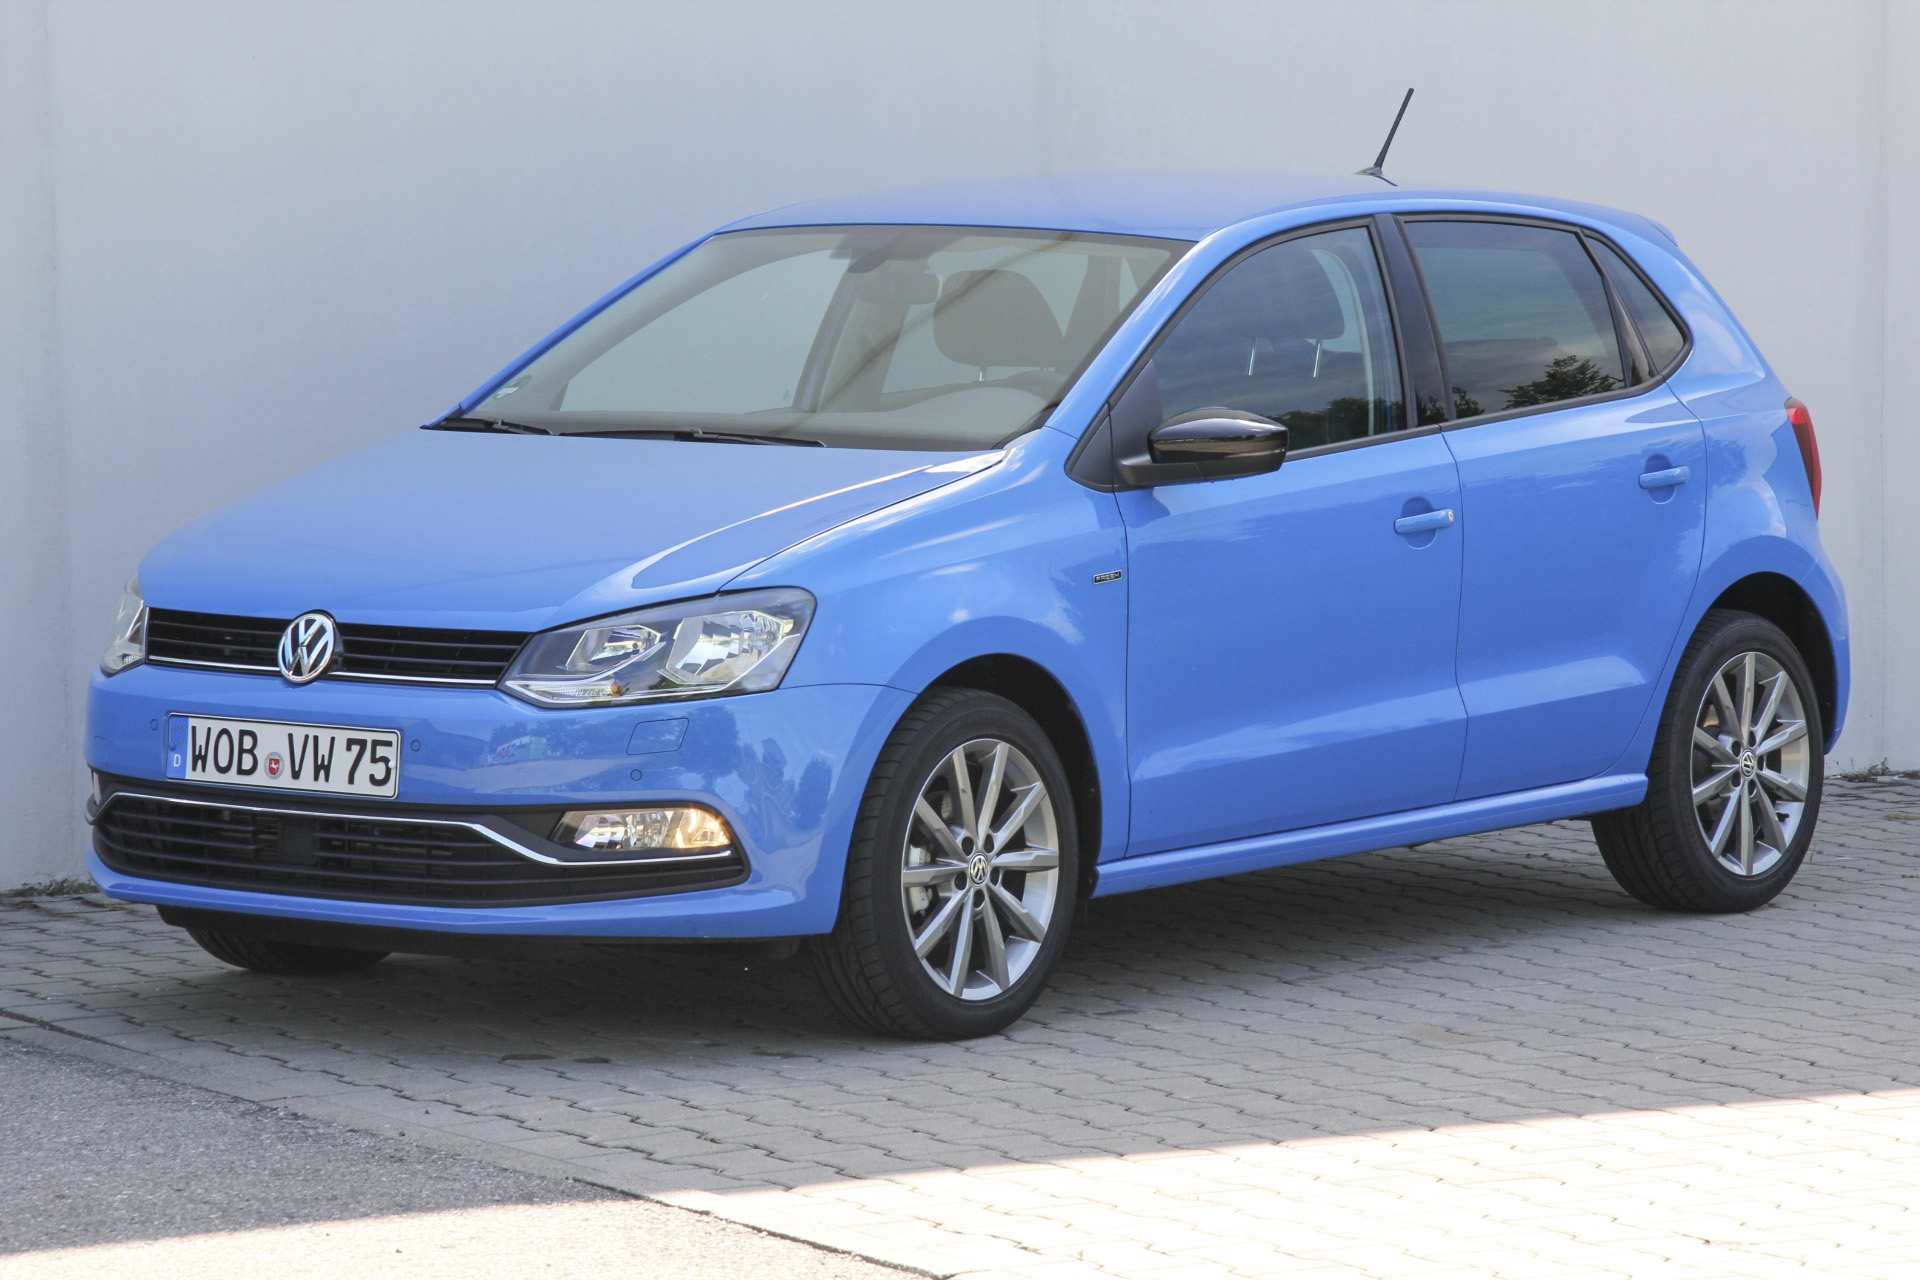 vw polo 1 2 tsi bmt test prijzen en specificaties. Black Bedroom Furniture Sets. Home Design Ideas